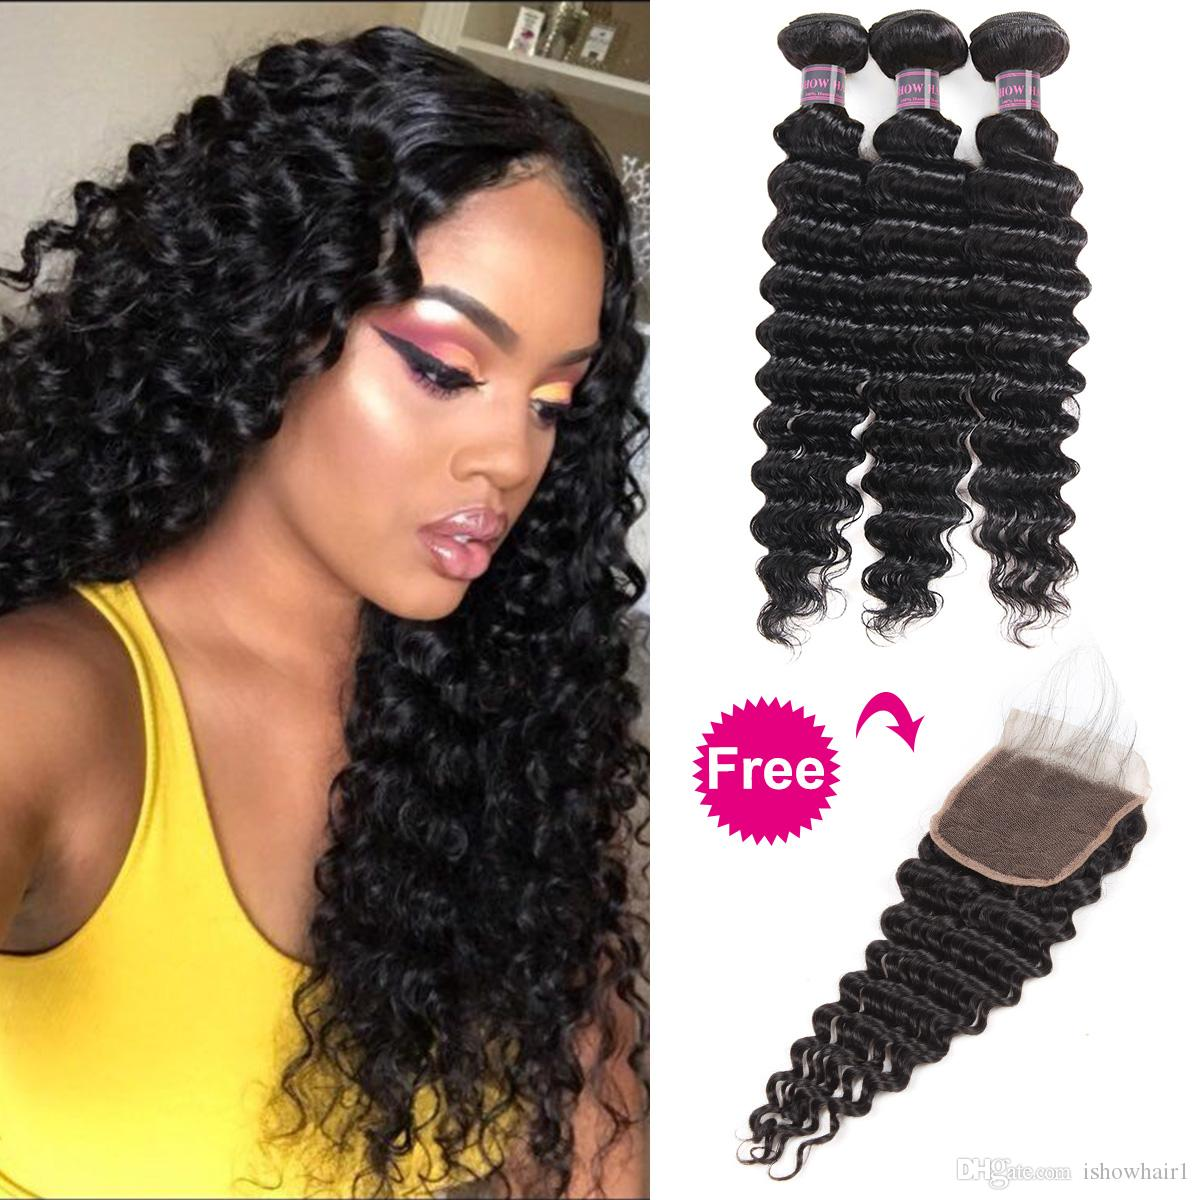 Peruvian Human Hair Bundles with Closure Buy 3Bundles Get A Free Closure Deep Loose Loose Wave Yaki Indian Straight Deep Wave Body Water